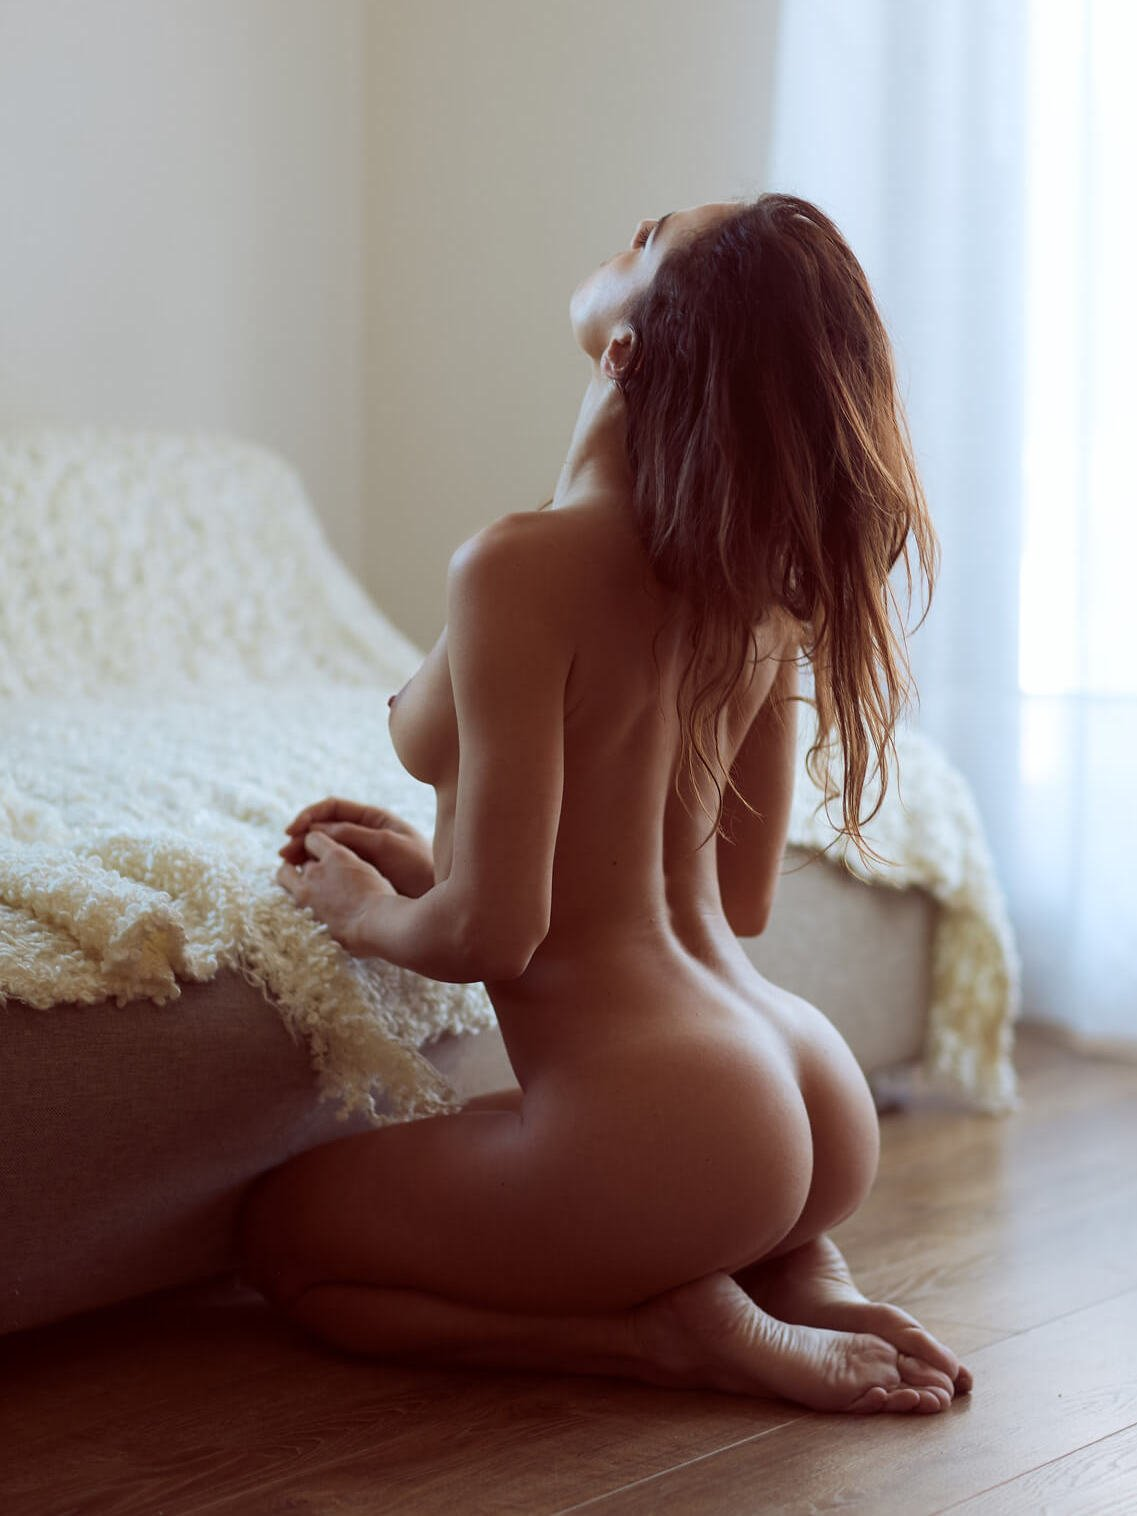 Sexy babes from instagram homemade compilation - 2 2